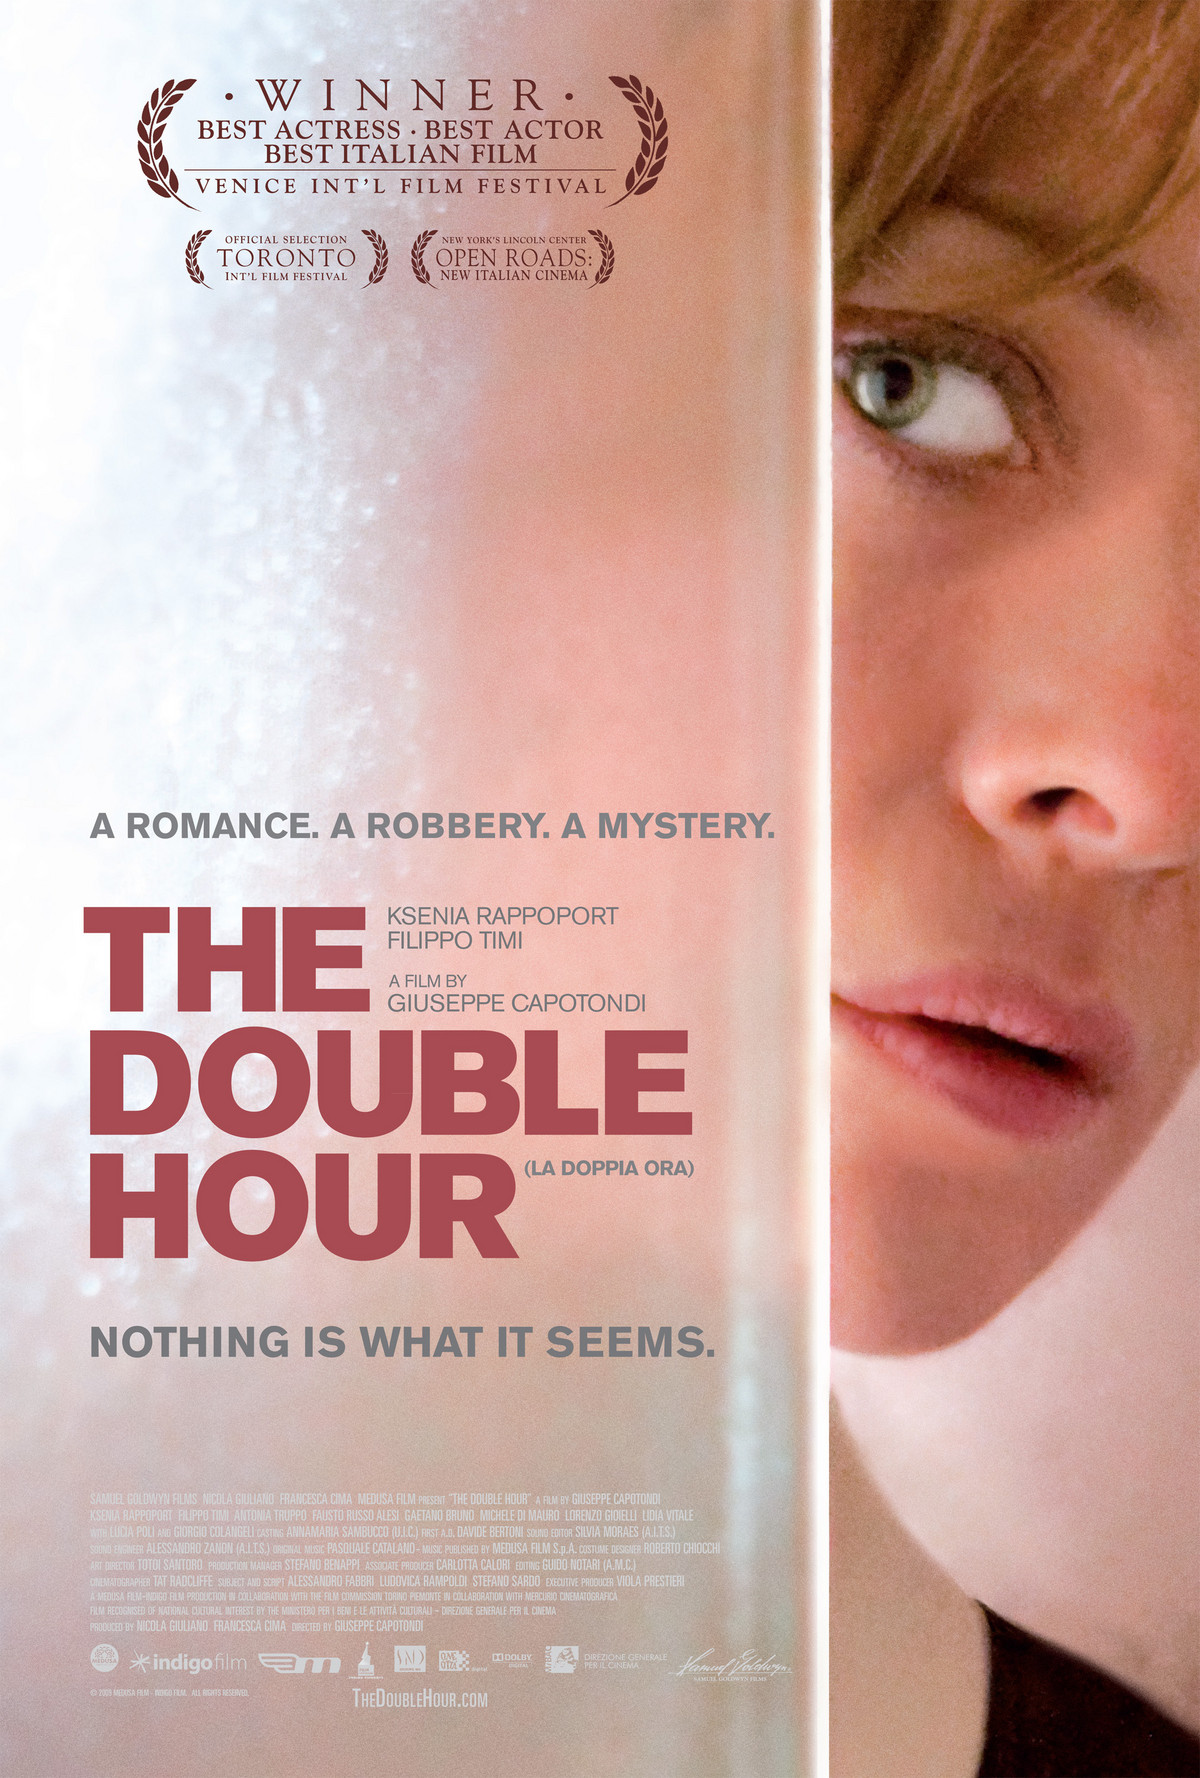 The Double Hour - Movie Poster #1 (Original)